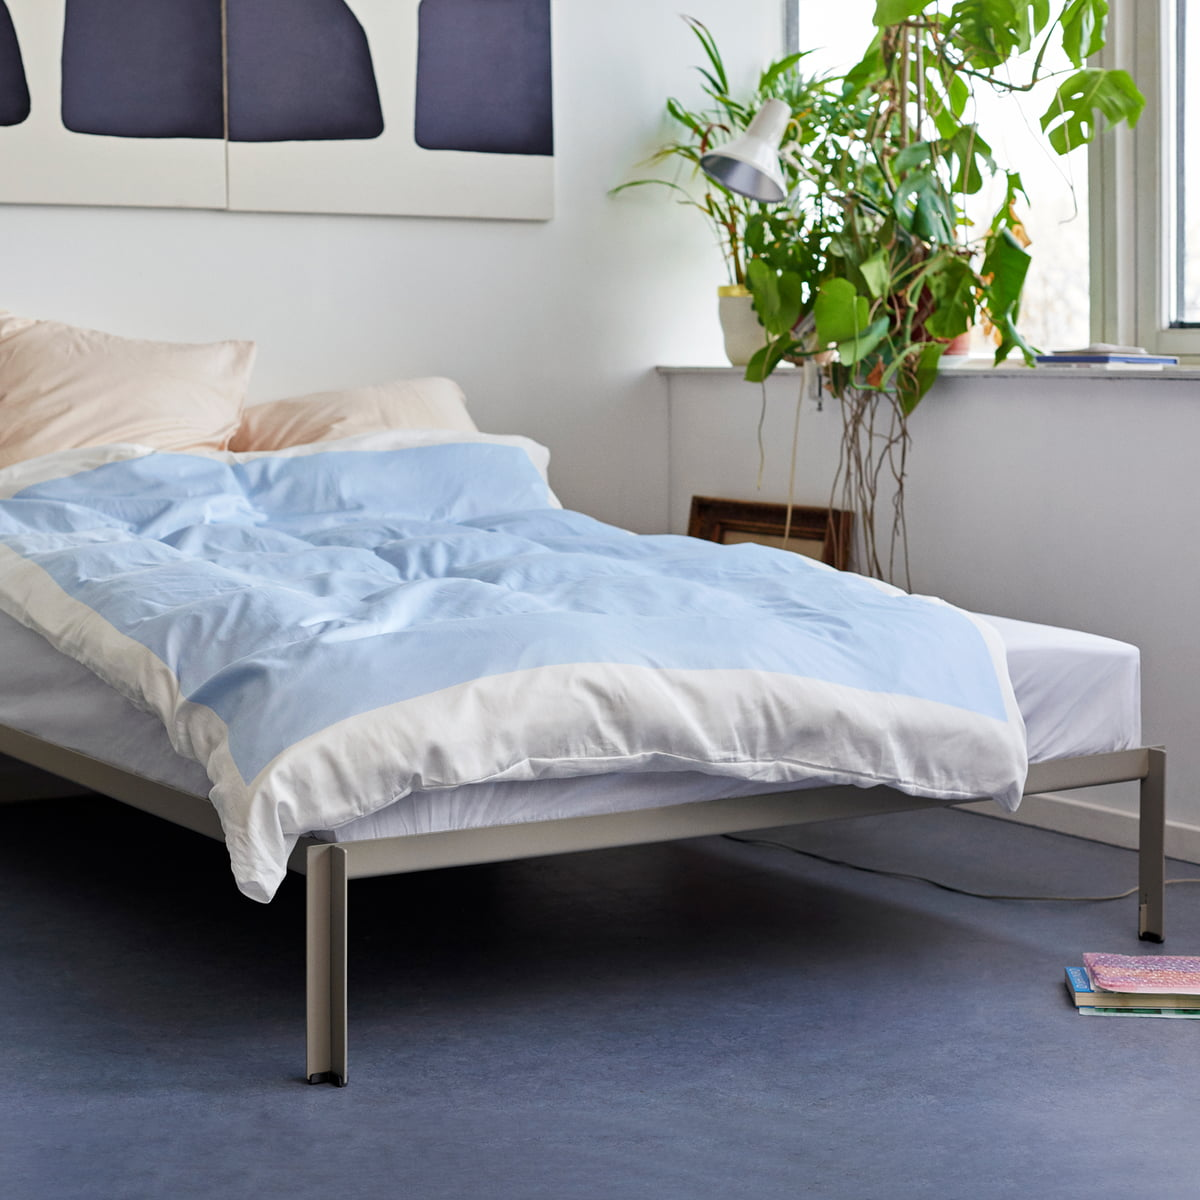 Connect Bed By Hay Connox